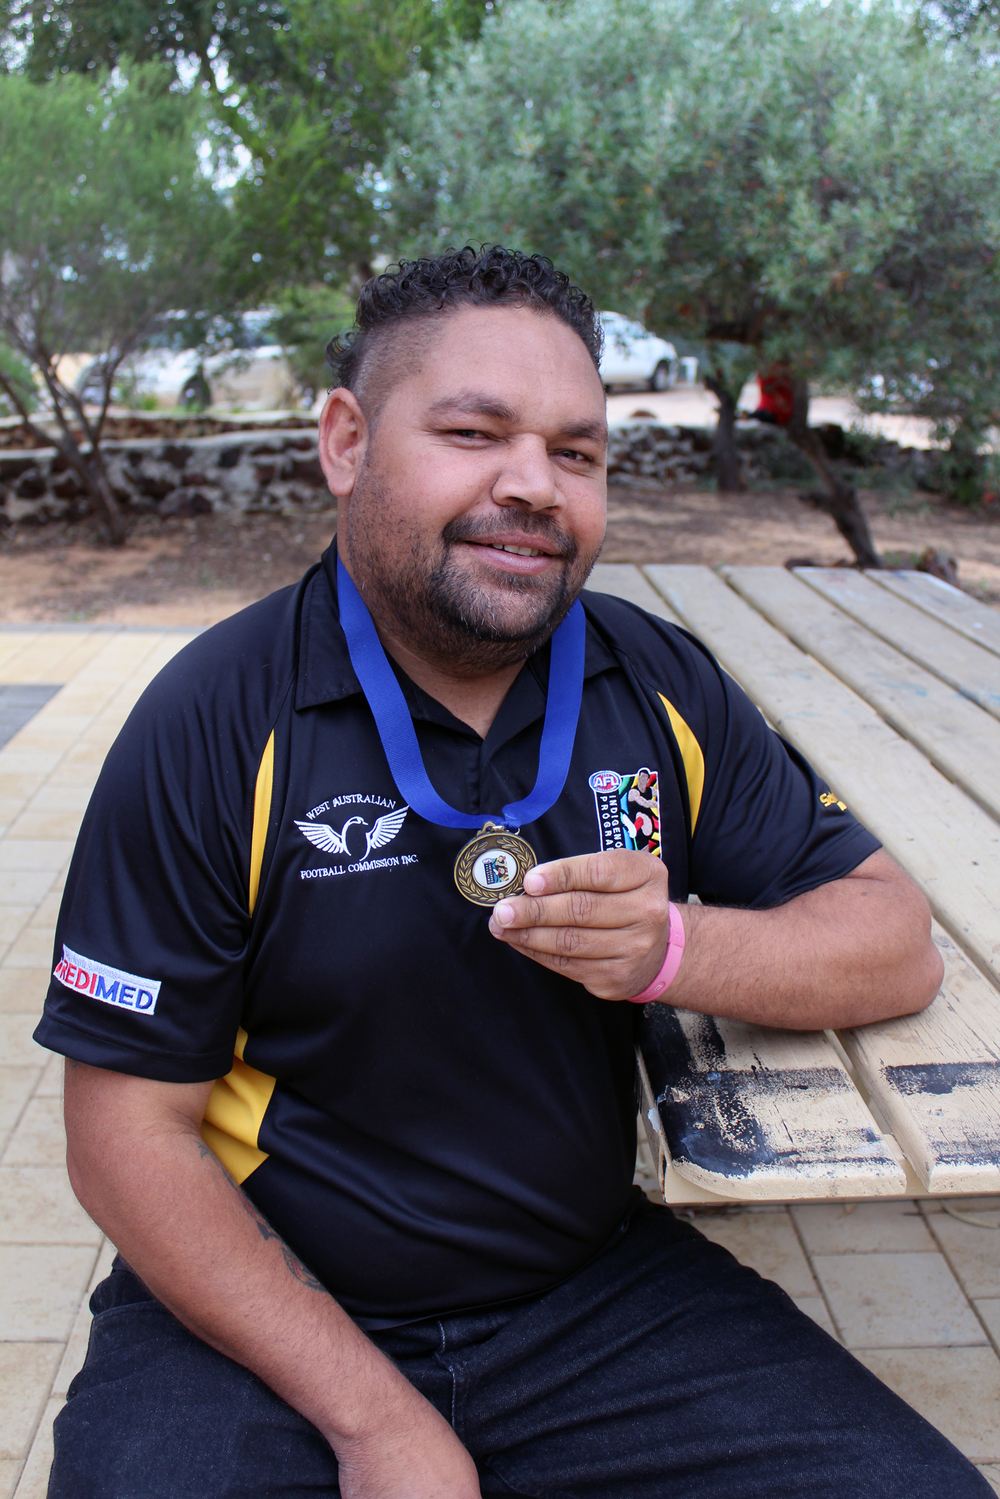 Gordy Clinch with the medal each team member received for winning the National Indigenous KickStart Championship for the fifth consecutive year in Cairns this year.